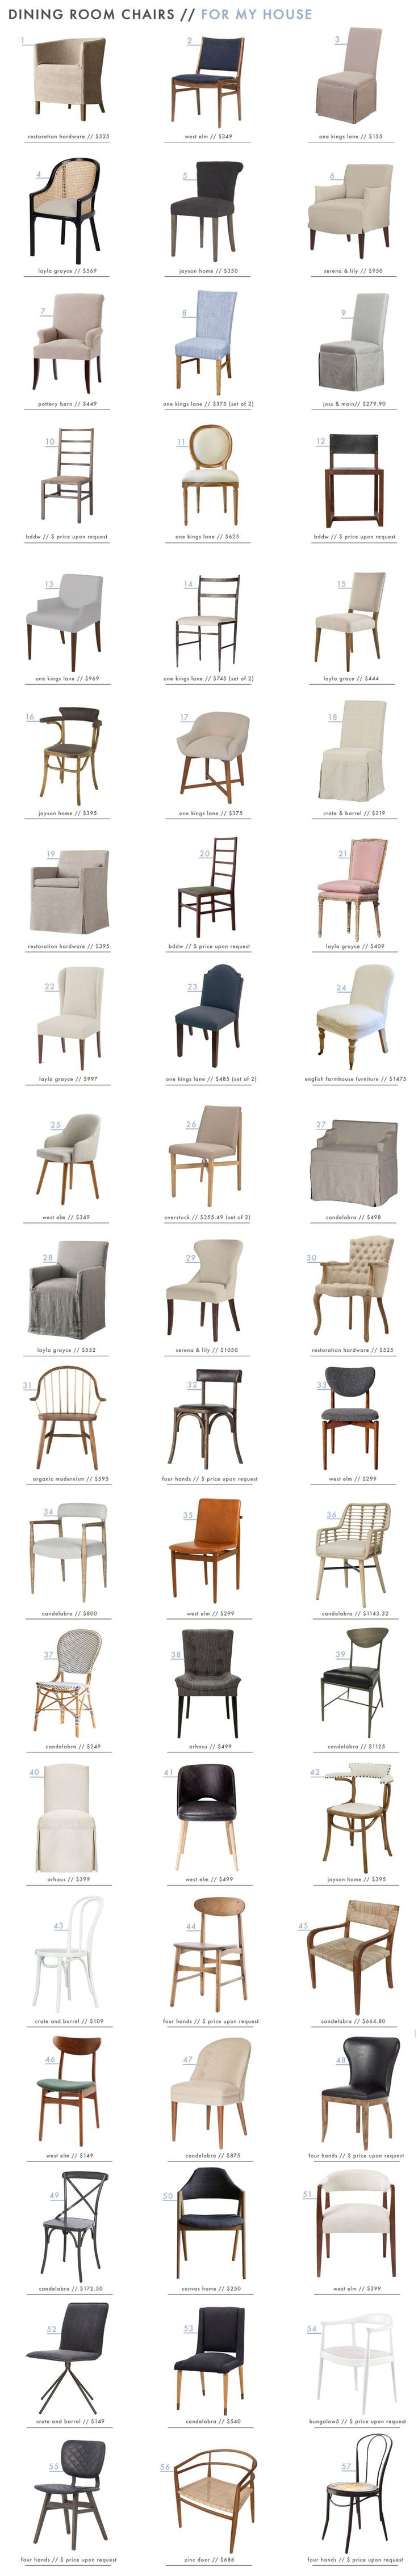 57 very pretty dining room chairs! #diningroomideas